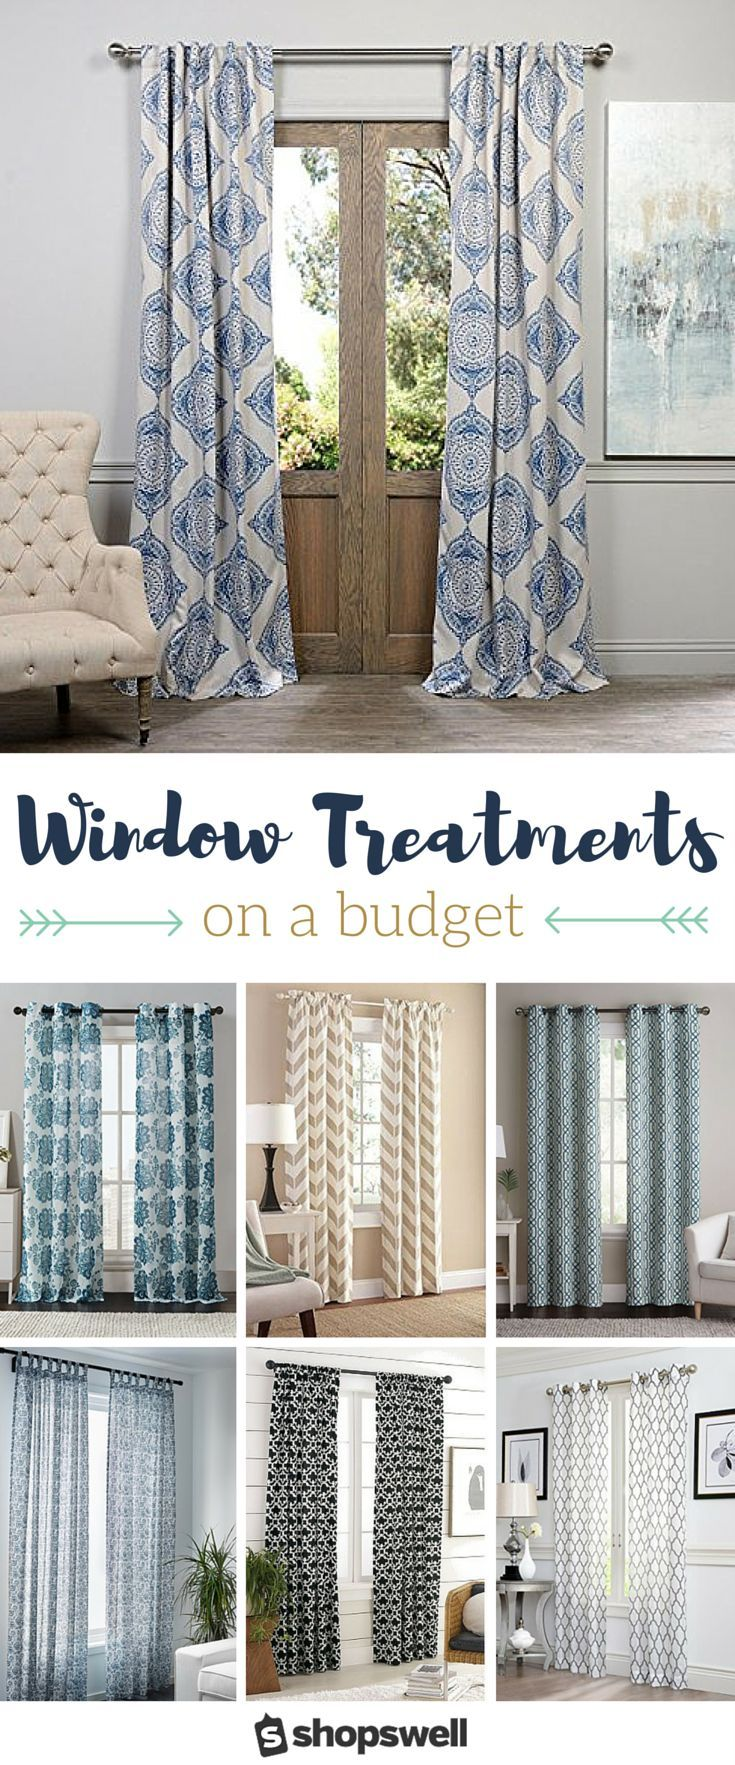 Cheap kitchen curtains window treatments - Curtains On A Budget 16 Gorgeous Window Panels Under 35